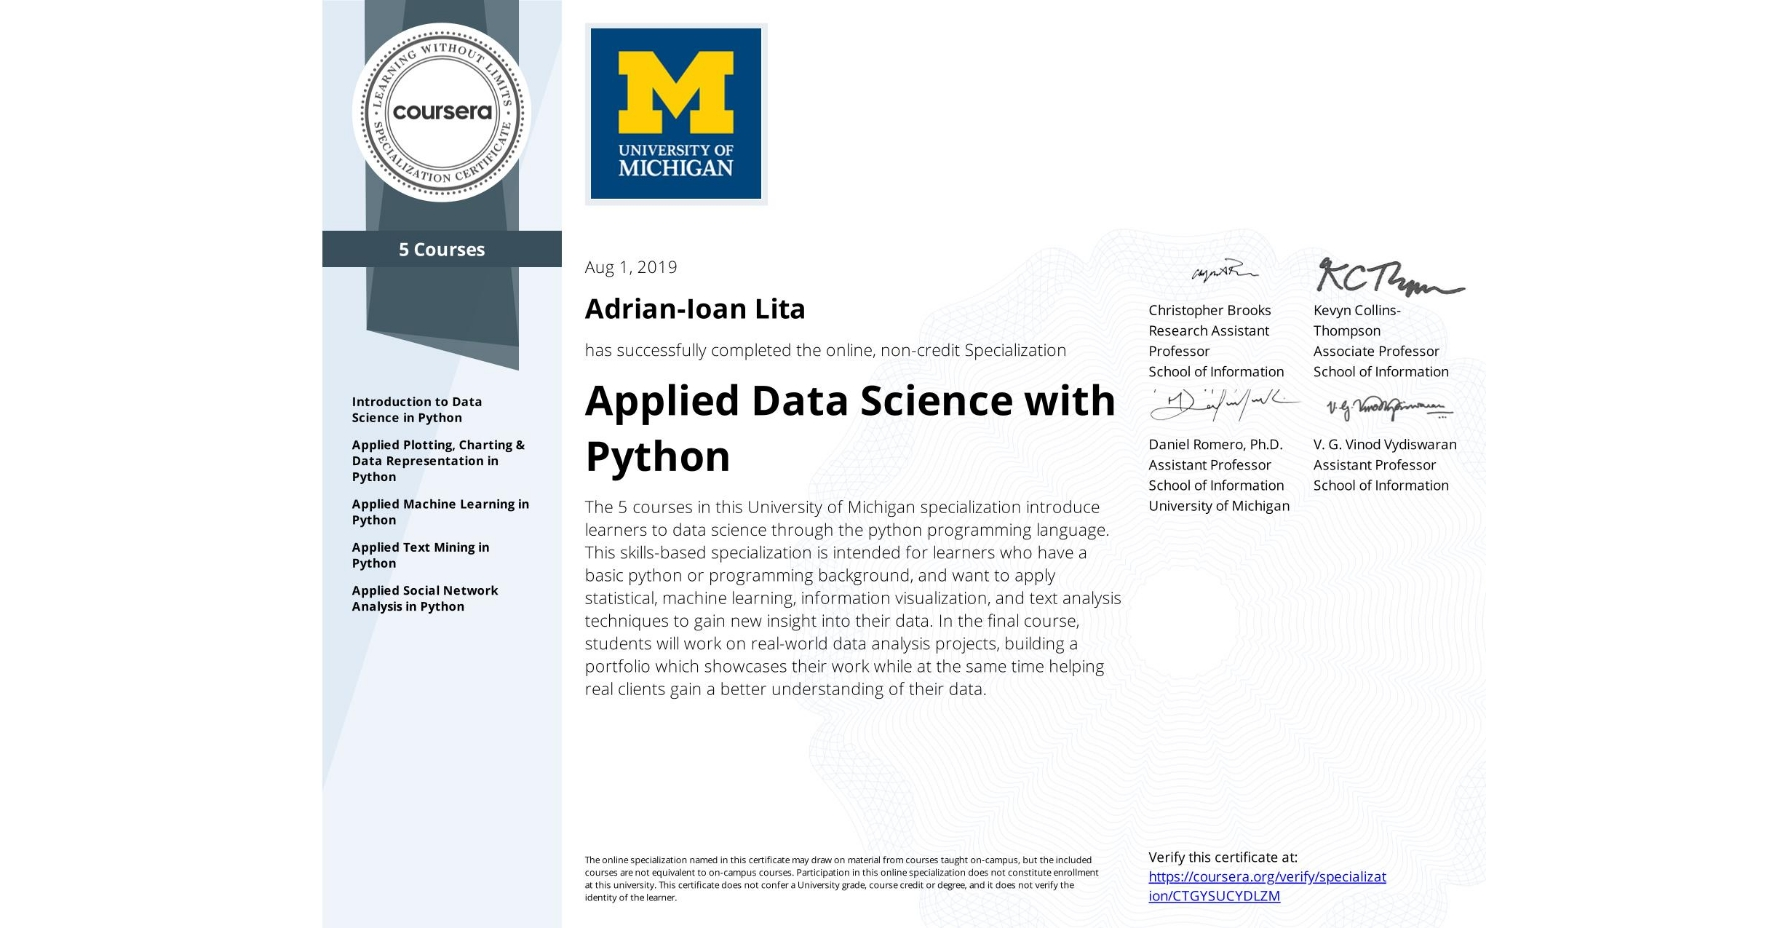 View certificate for Adrian-Ioan Lita, Applied Data Science with Python, offered through Coursera. The 5 courses in this University of Michigan specialization introduce learners to data science through the python programming language. This skills-based specialization is intended for learners who have a basic python or programming background, and want to apply statistical, machine learning, information visualization, and text analysis techniques to gain new insight into their data. In the final course, students will work on real-world data analysis projects, building a portfolio which showcases their work while at the same time helping real clients gain a better understanding of their data.